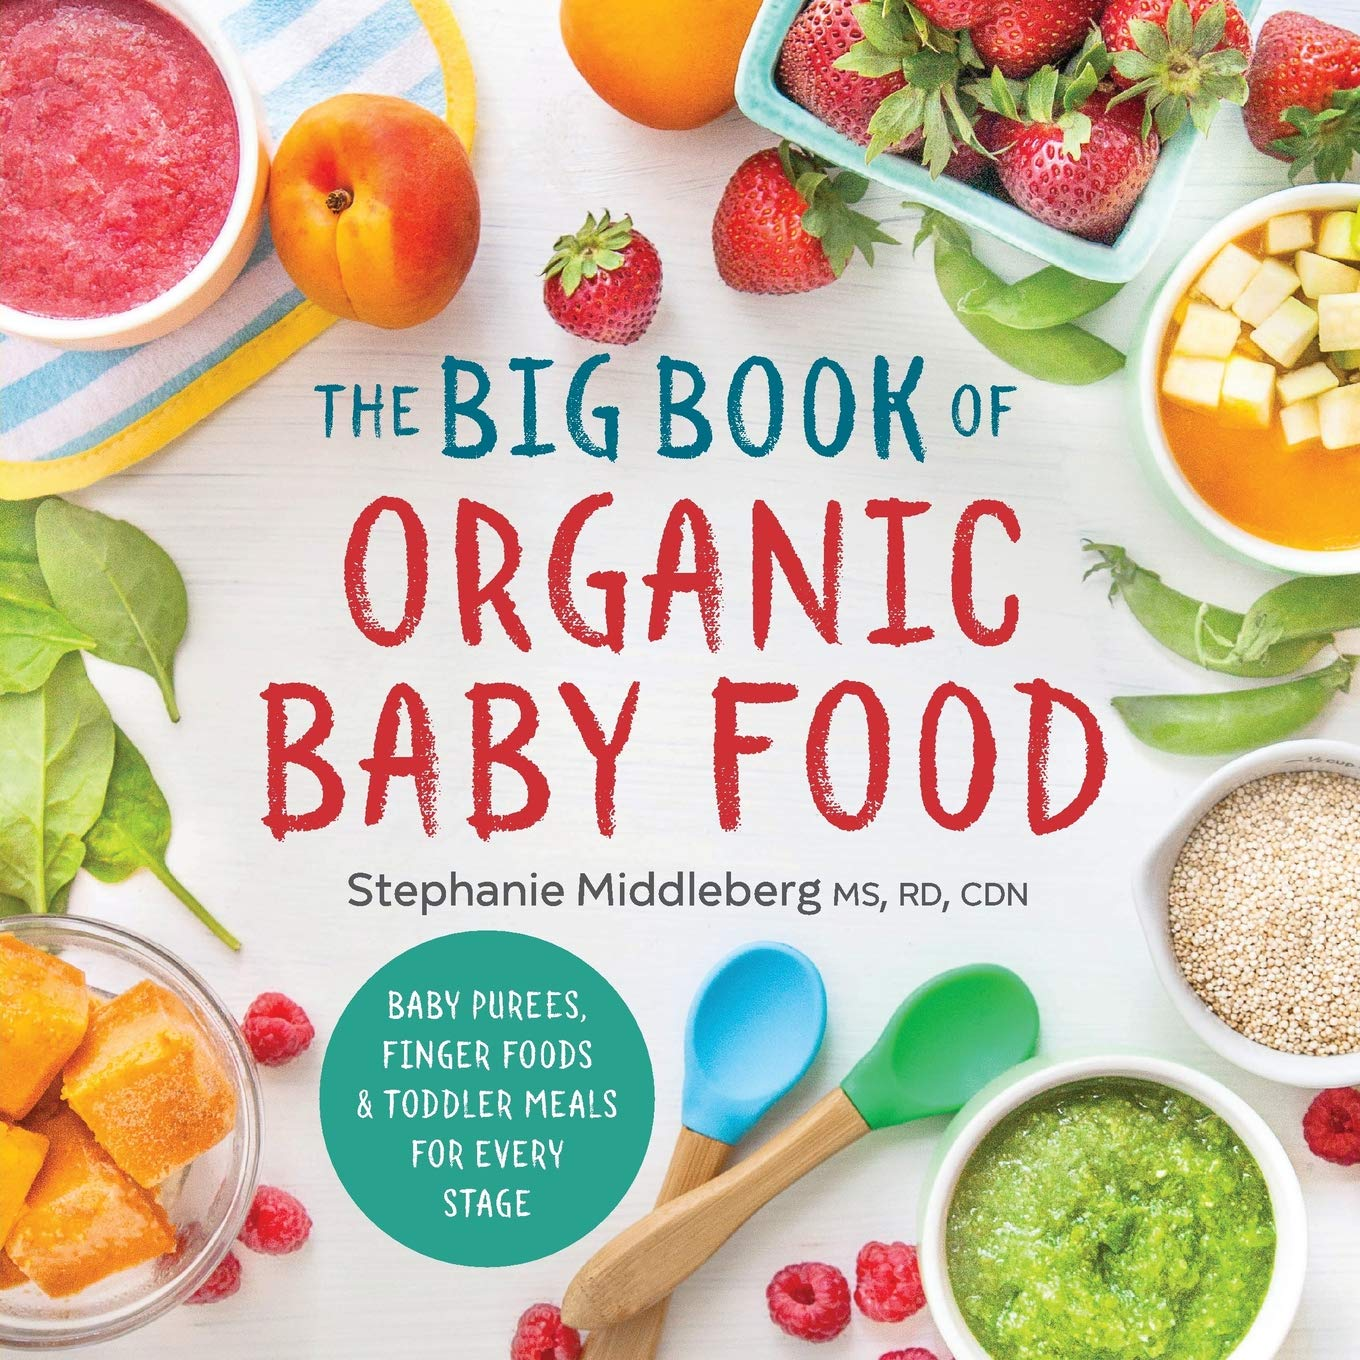 950015e88 The Big Book of Organic Baby Food  Baby Purées